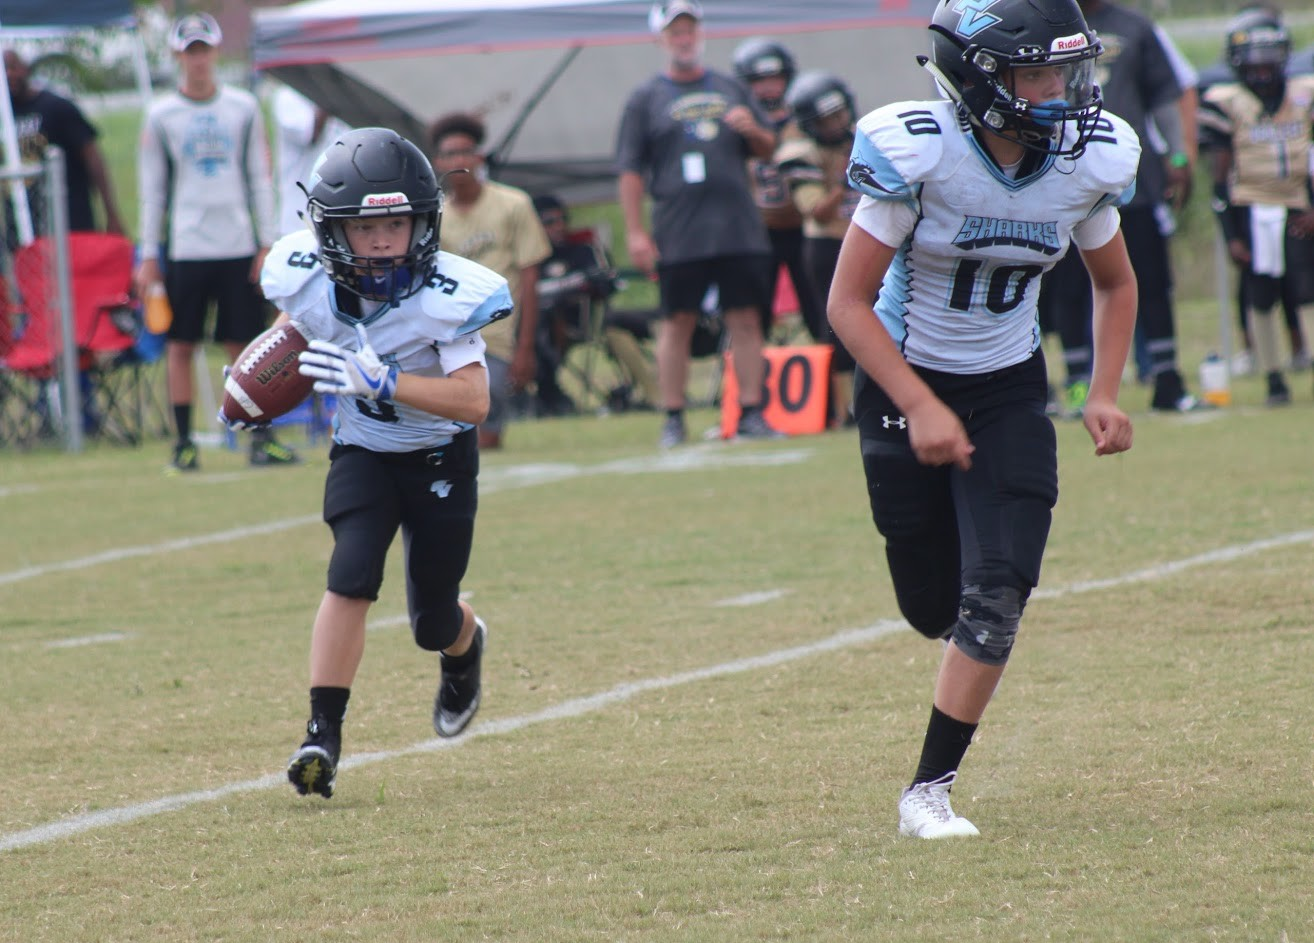 Pee wee football com